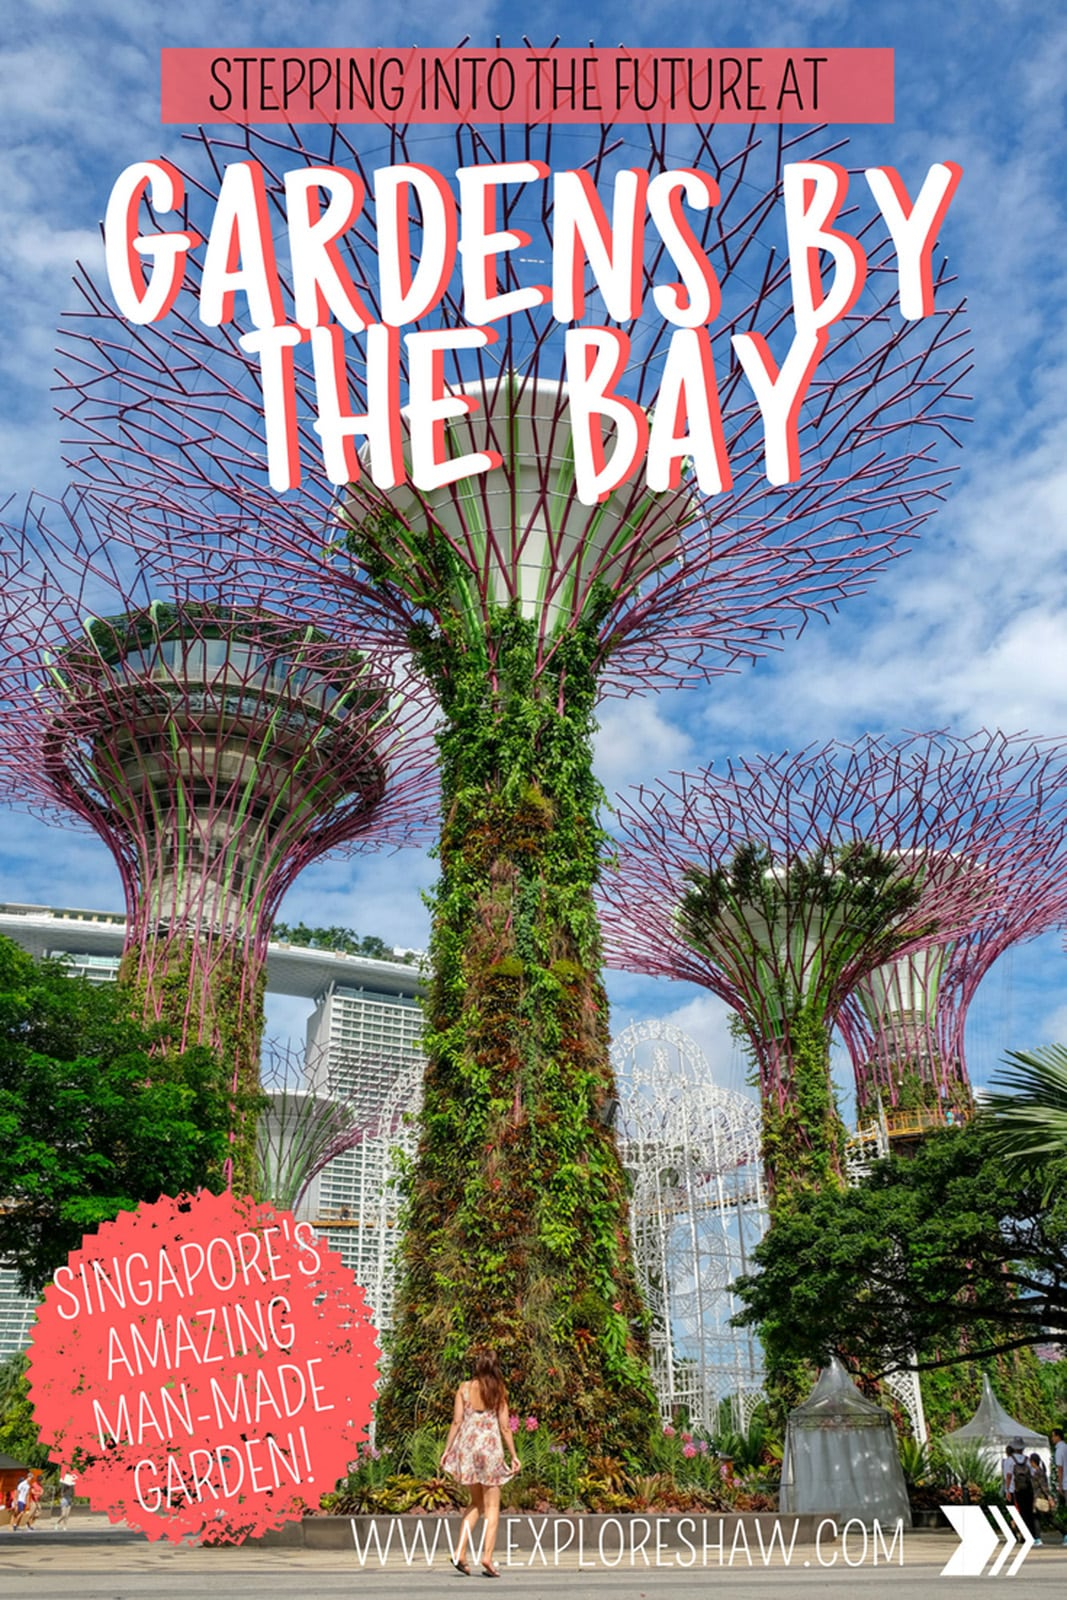 STEPPING INTO THE FUTURE AT GARDENS BY THE BAY